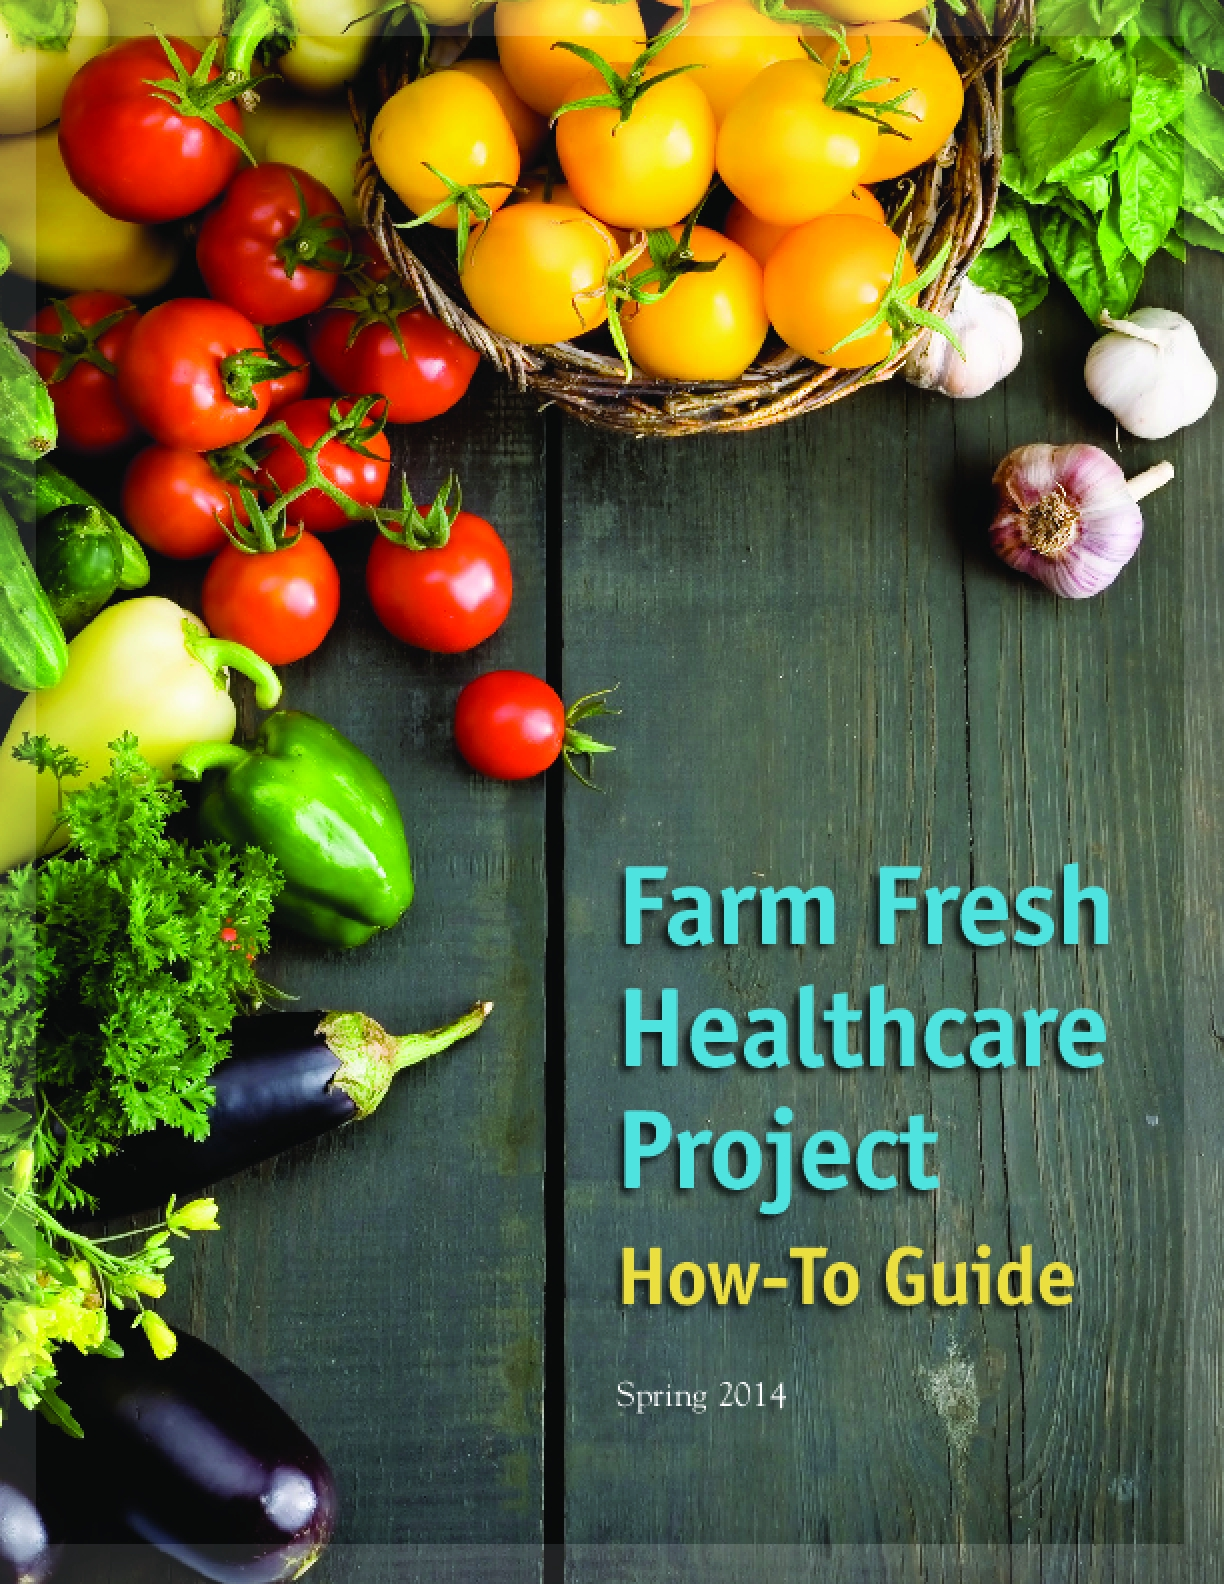 Farm Fresh Healthcare Project: How-To Guide